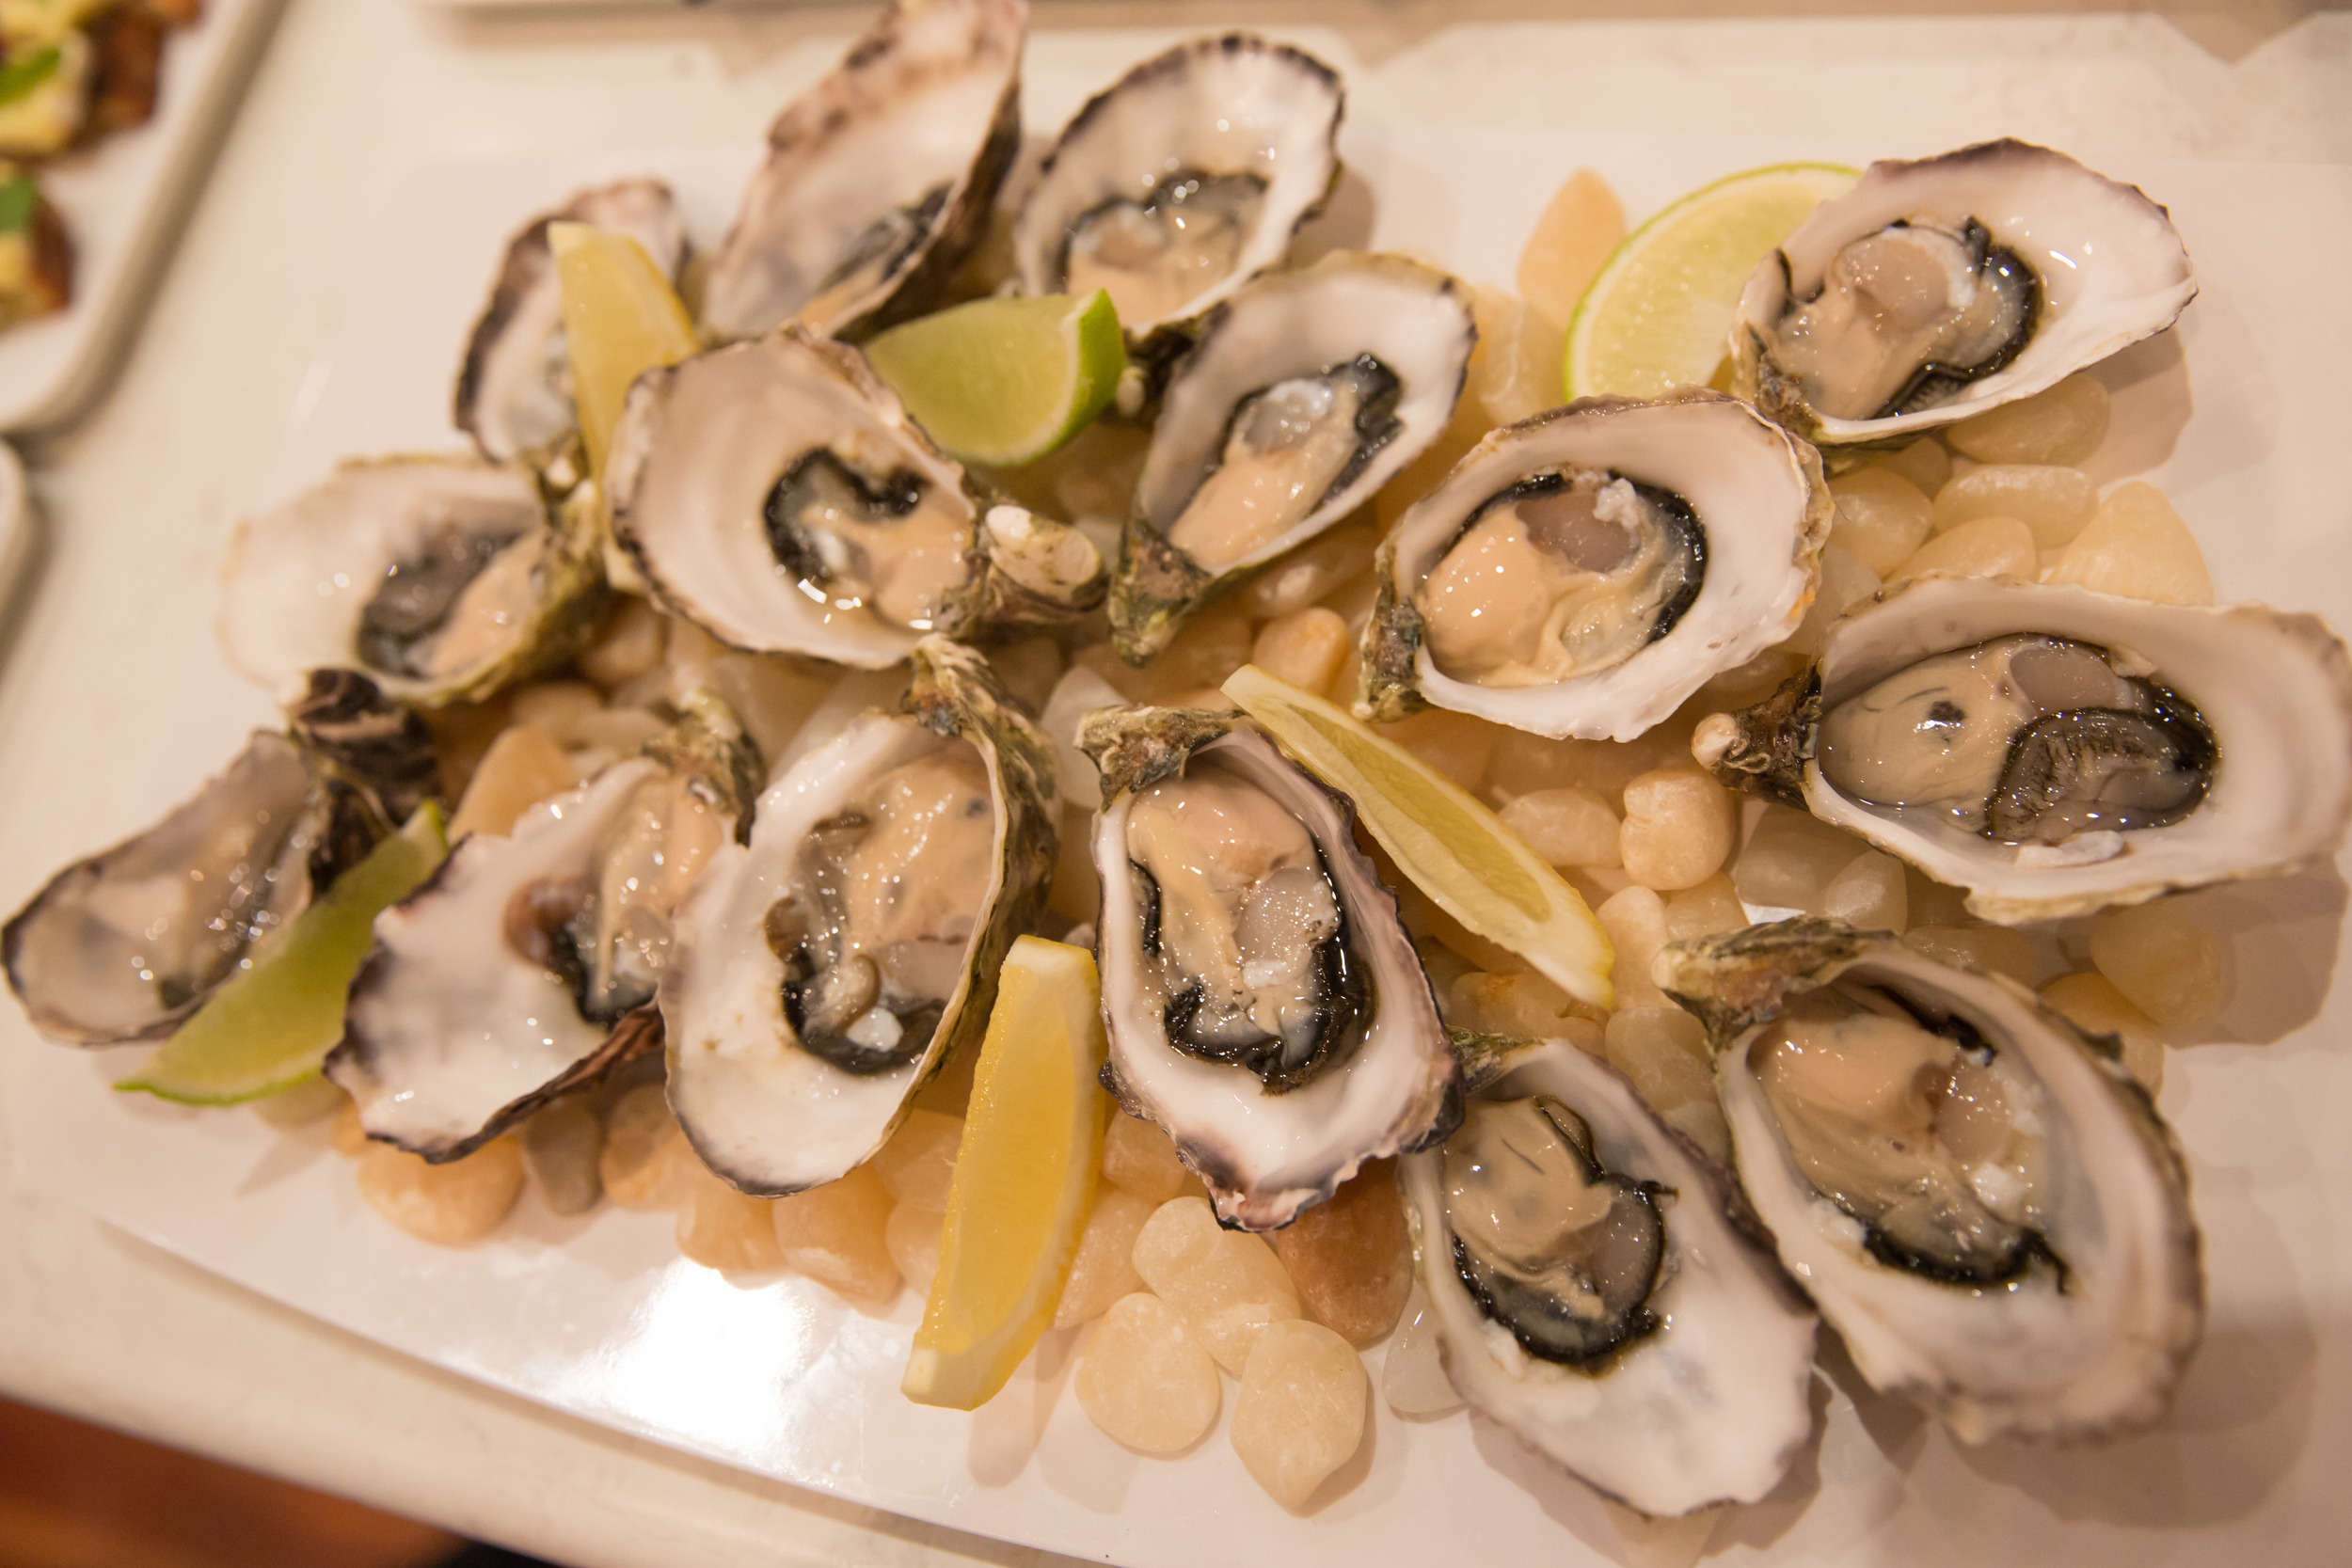 Oysters and Champagne is sosimple but yet one of the most popular combinations to impress your clients